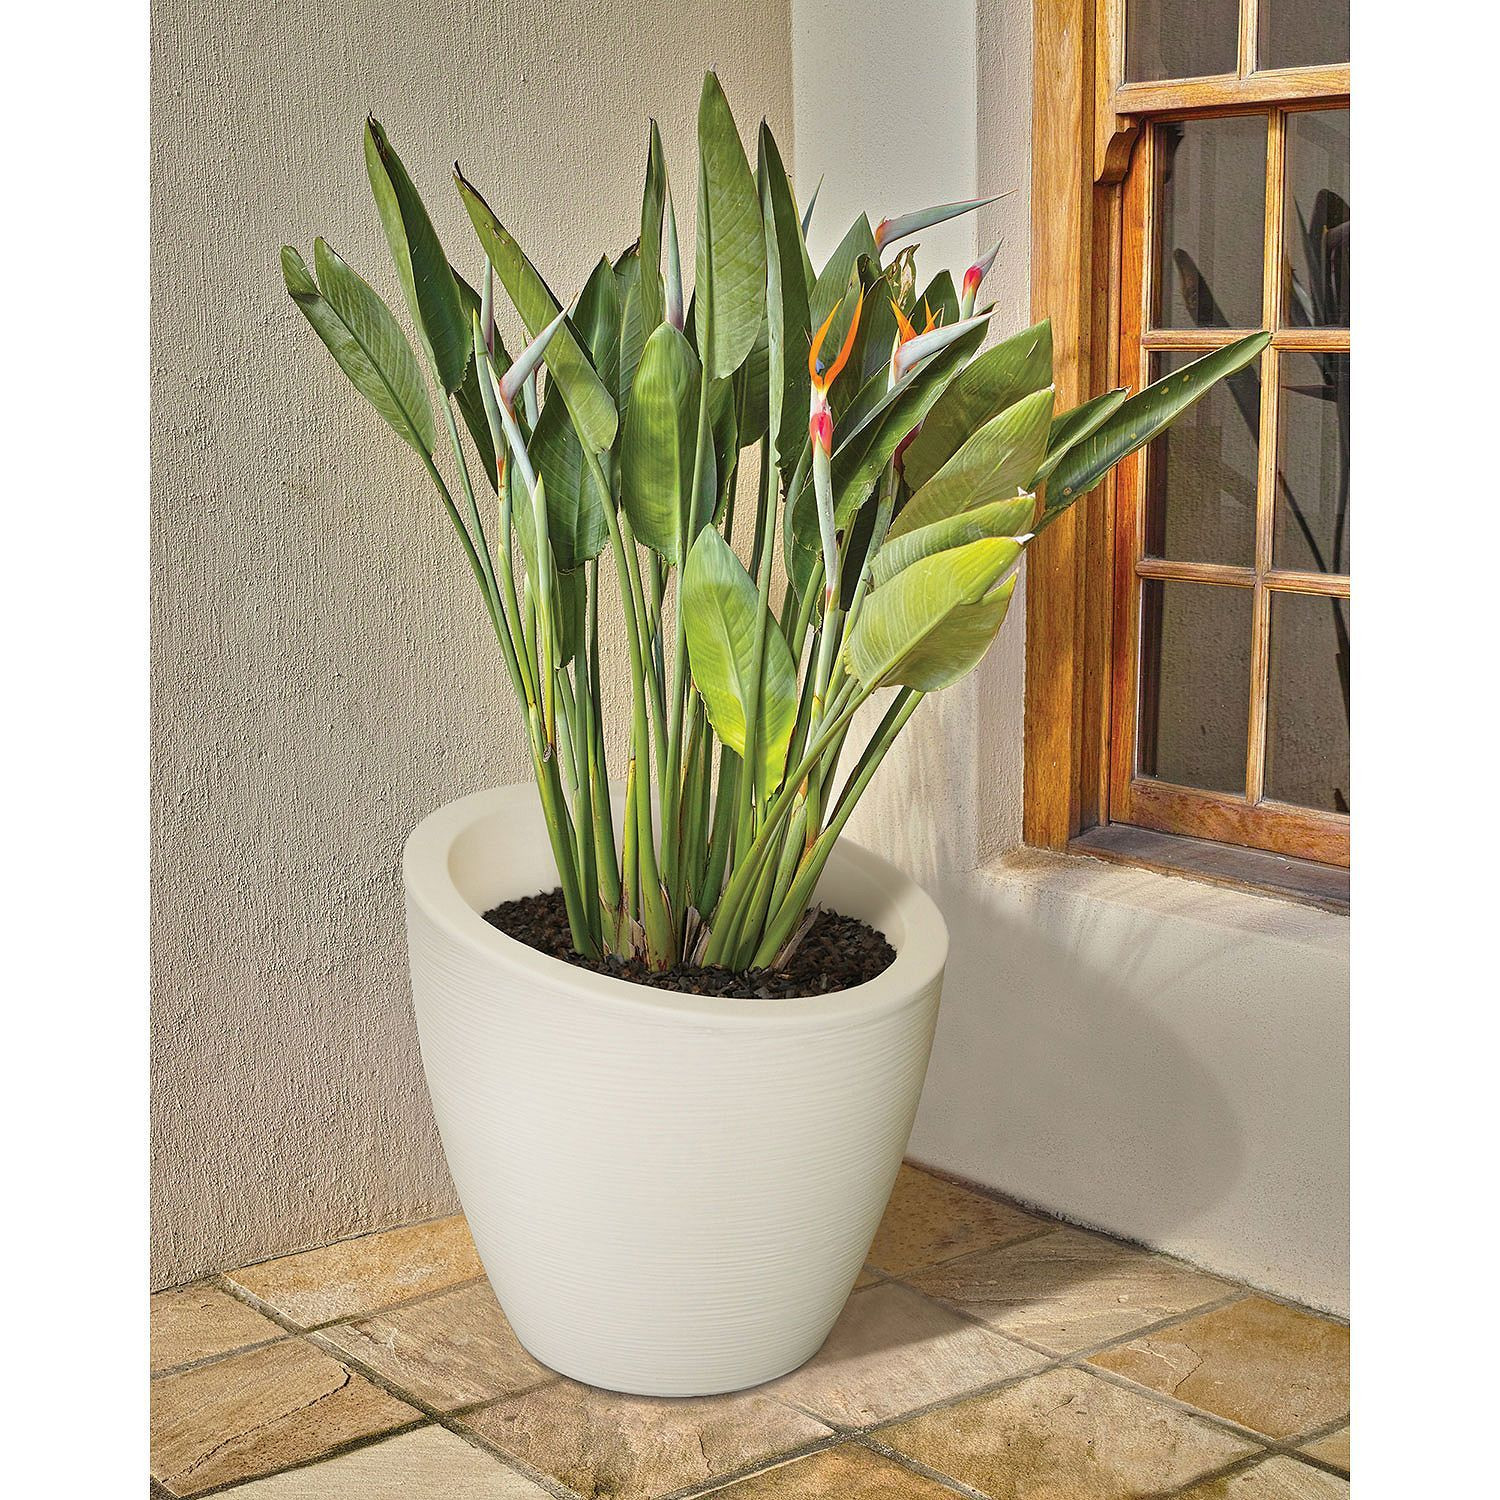 plant vase home depot of modesto 20 round planter various colors get it growin throughout modesto 20 round planter various colors sams club